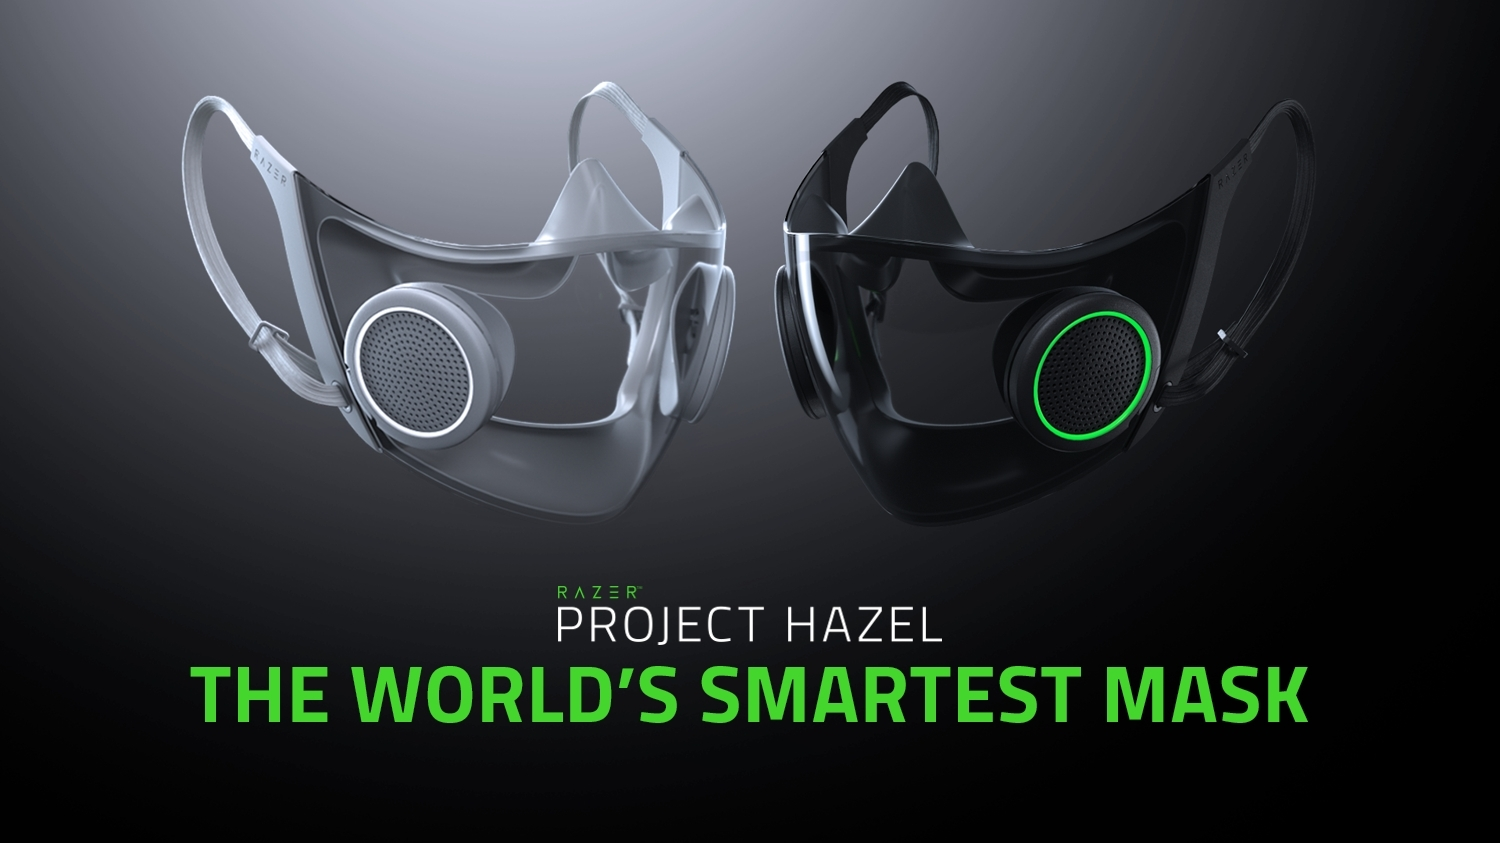 Project Hazel from Razer is the world's smartest facial mask for everyday use with N95 protection, a replaceable and rechargeable active ventilation system and a transparent shield for social interaction.